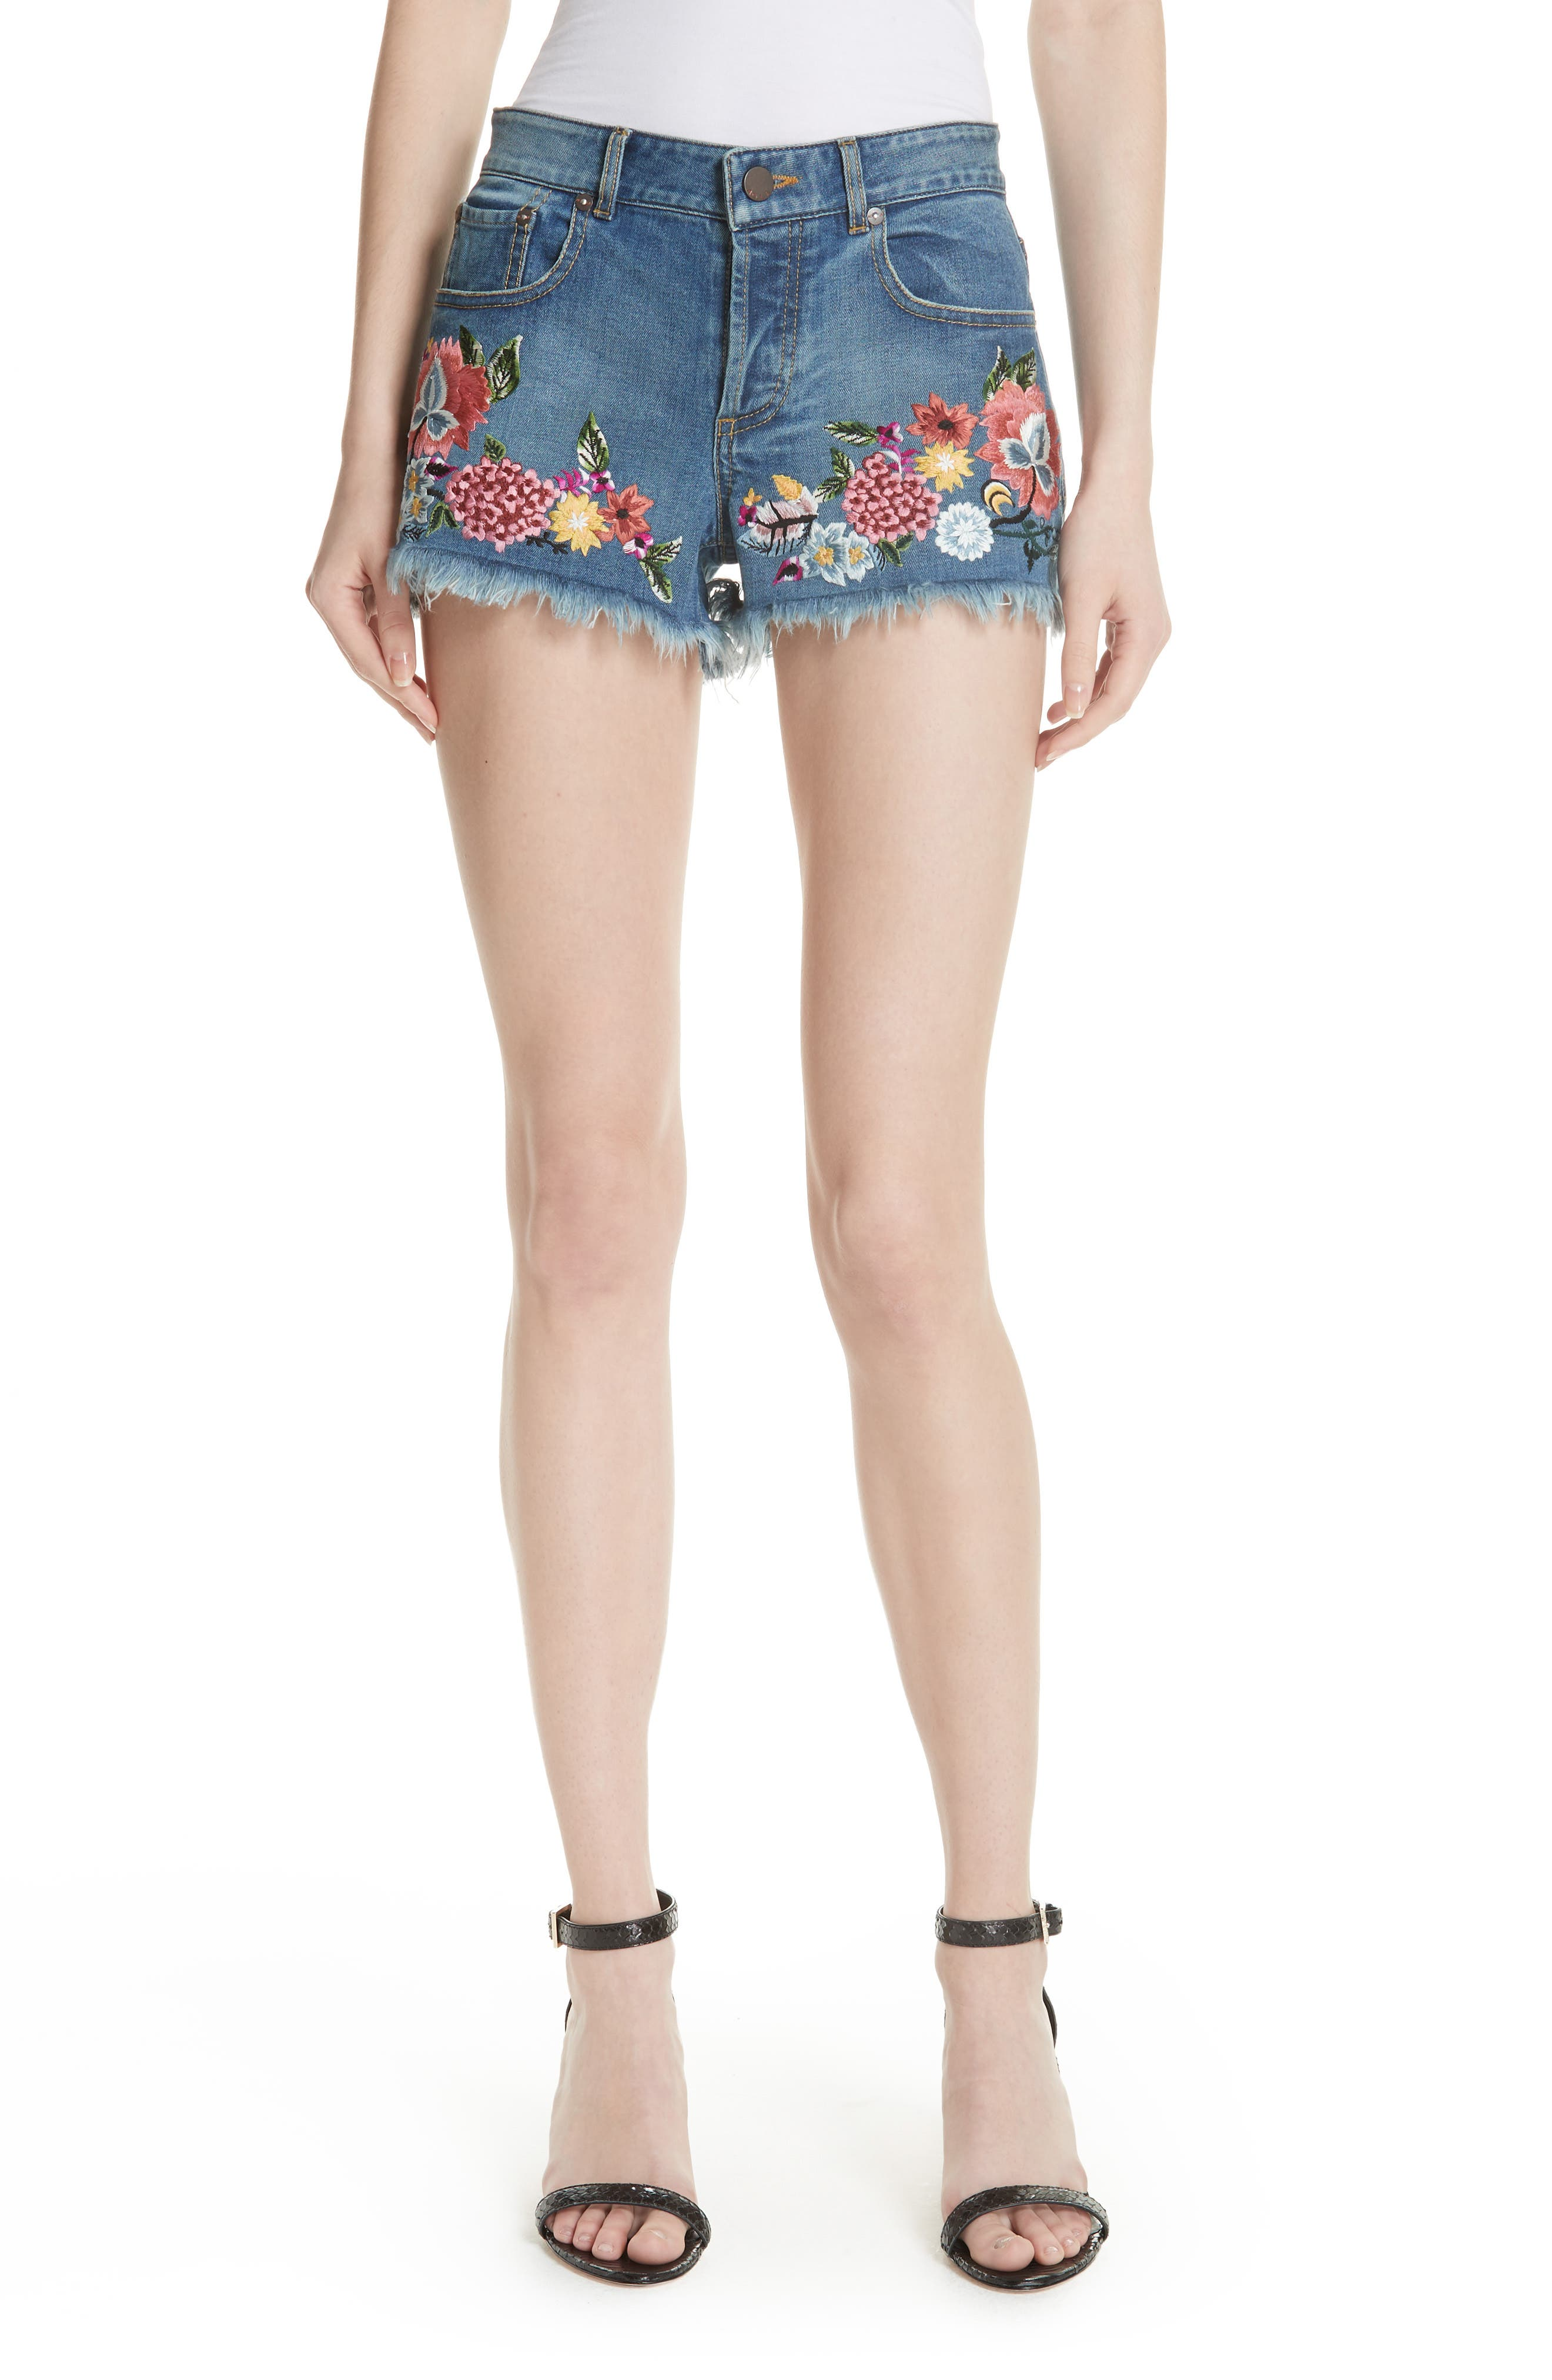 ALICE + OLIVIA JEANS,                             Embroidered Denim Shorts,                             Main thumbnail 1, color,                             460